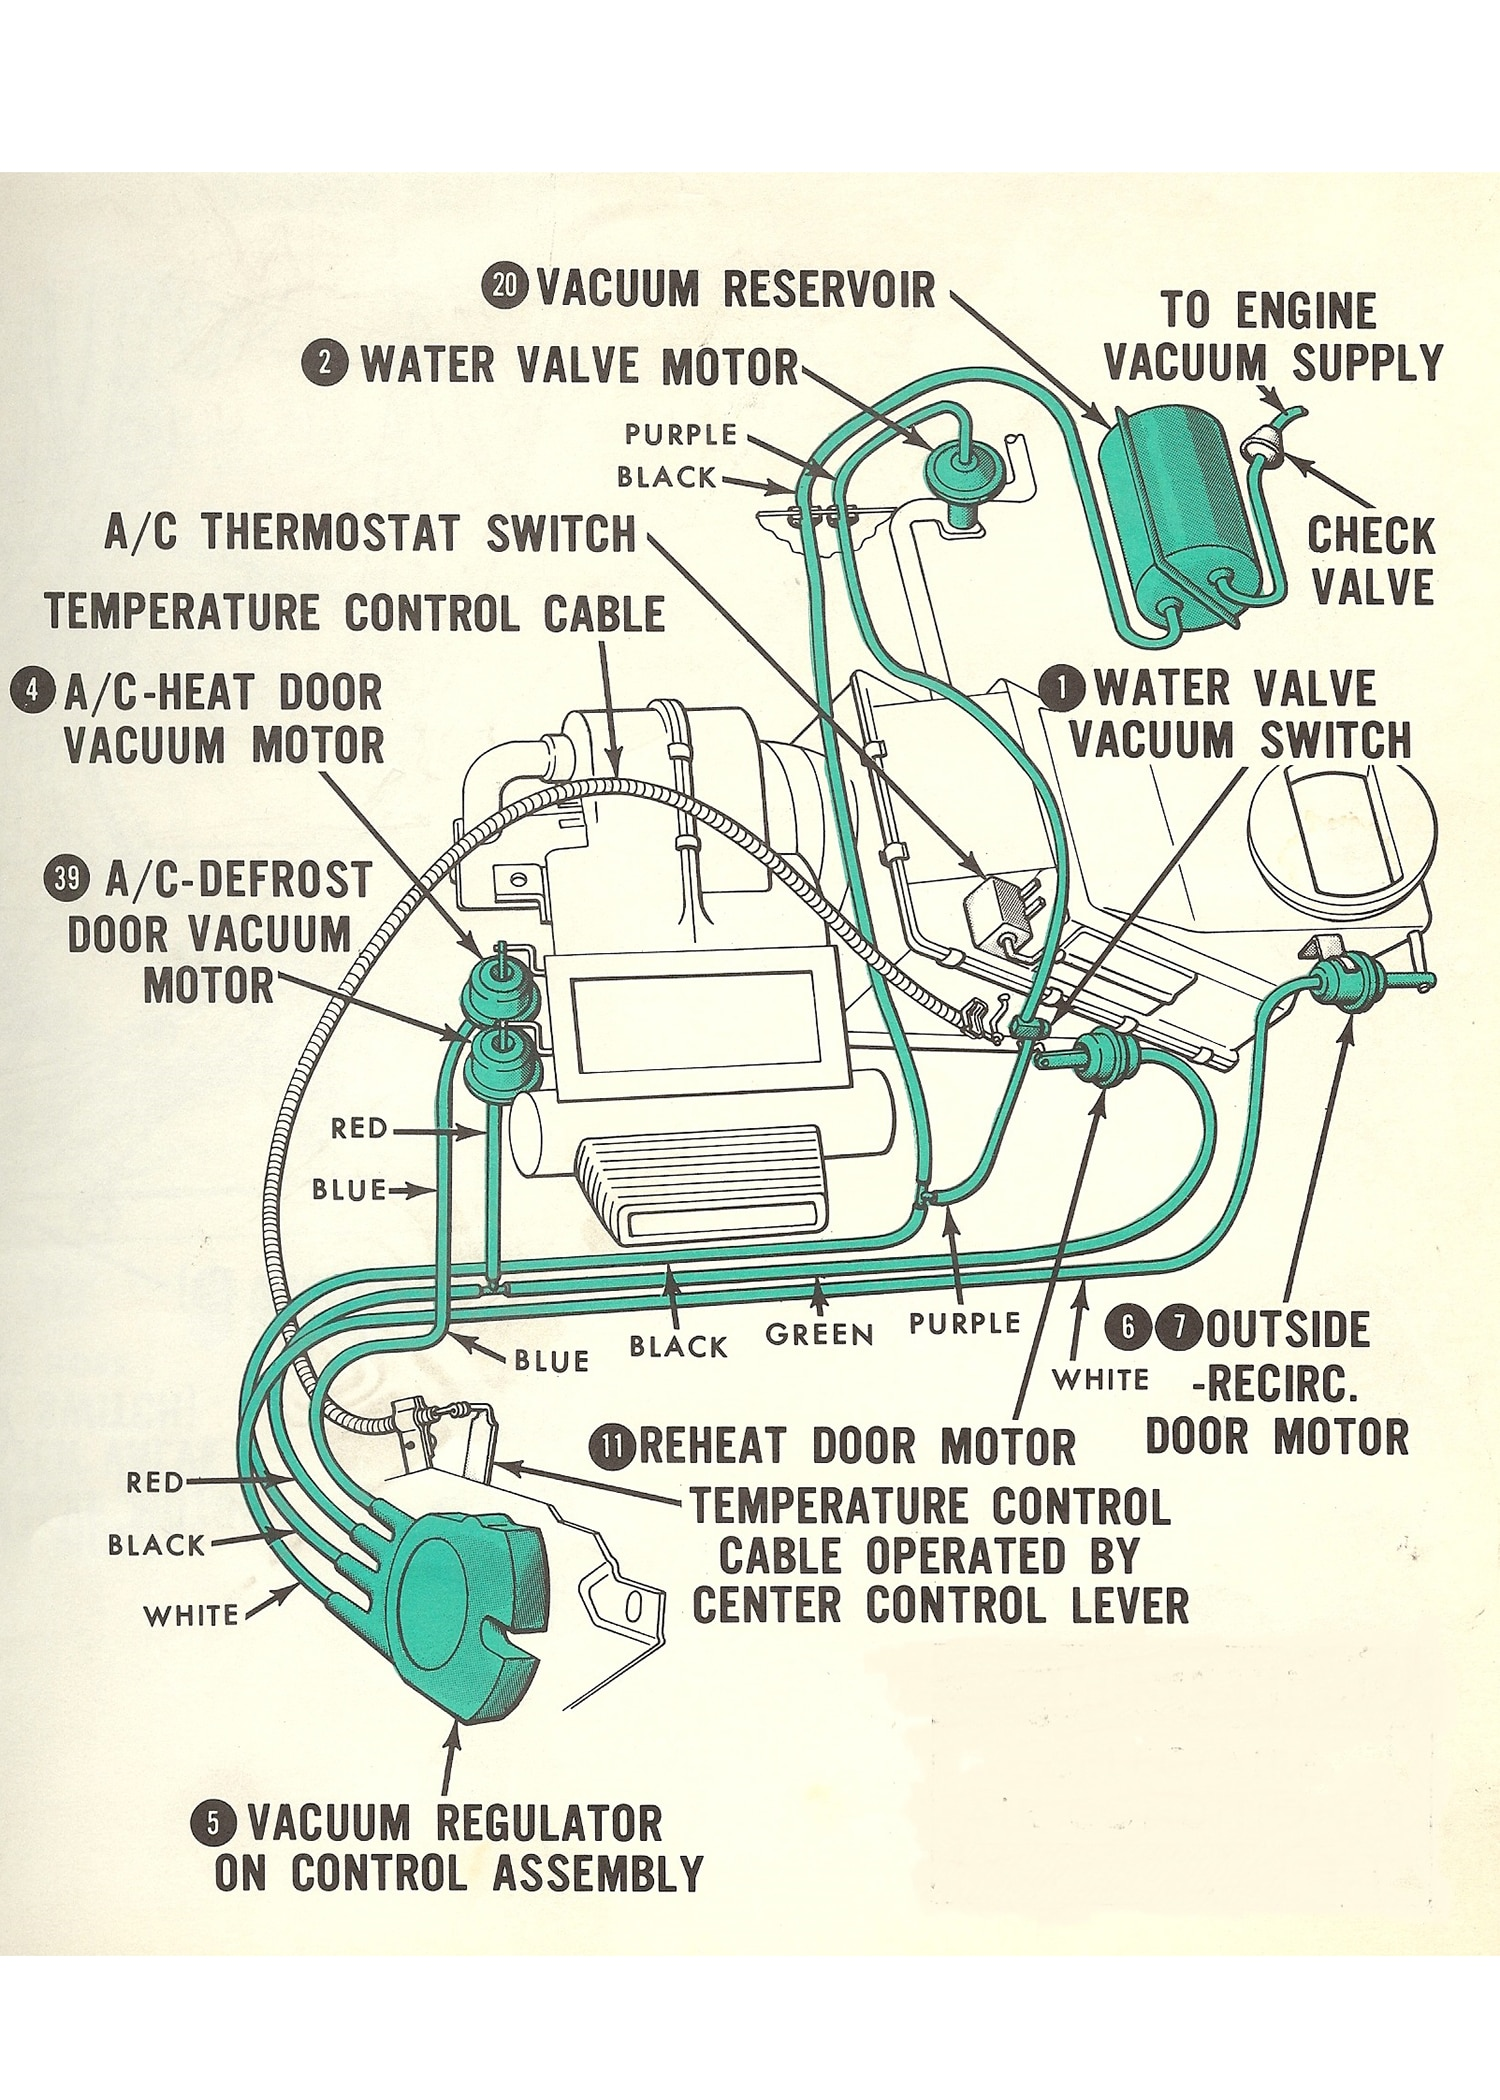 65 Mustang Heater Wiring Diagram Troubleshooting Classic Mustang Climate Control Hot Rod